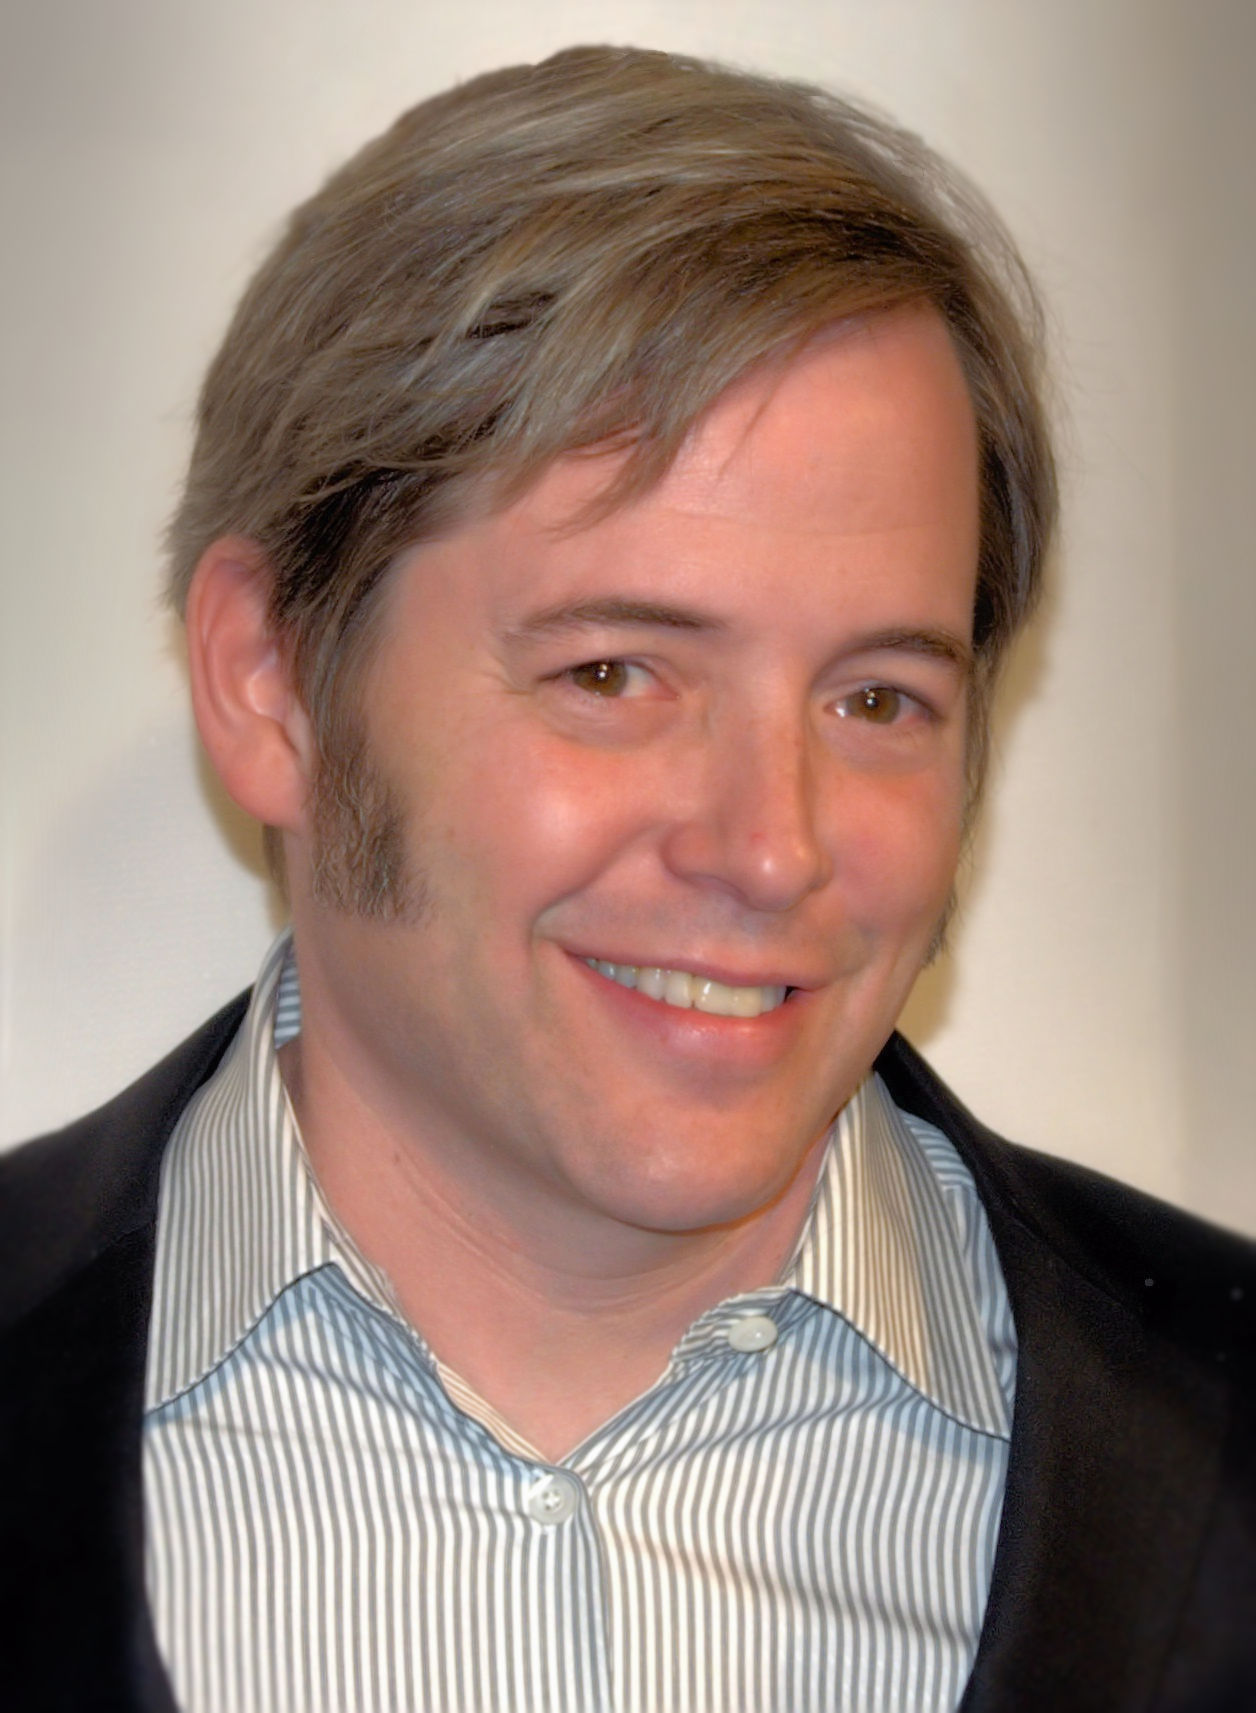 The 56-year old son of father James Broderick and mother Patricia Biow Matthew Broderick in 2018 photo. Matthew Broderick earned a  million dollar salary - leaving the net worth at 45 million in 2018